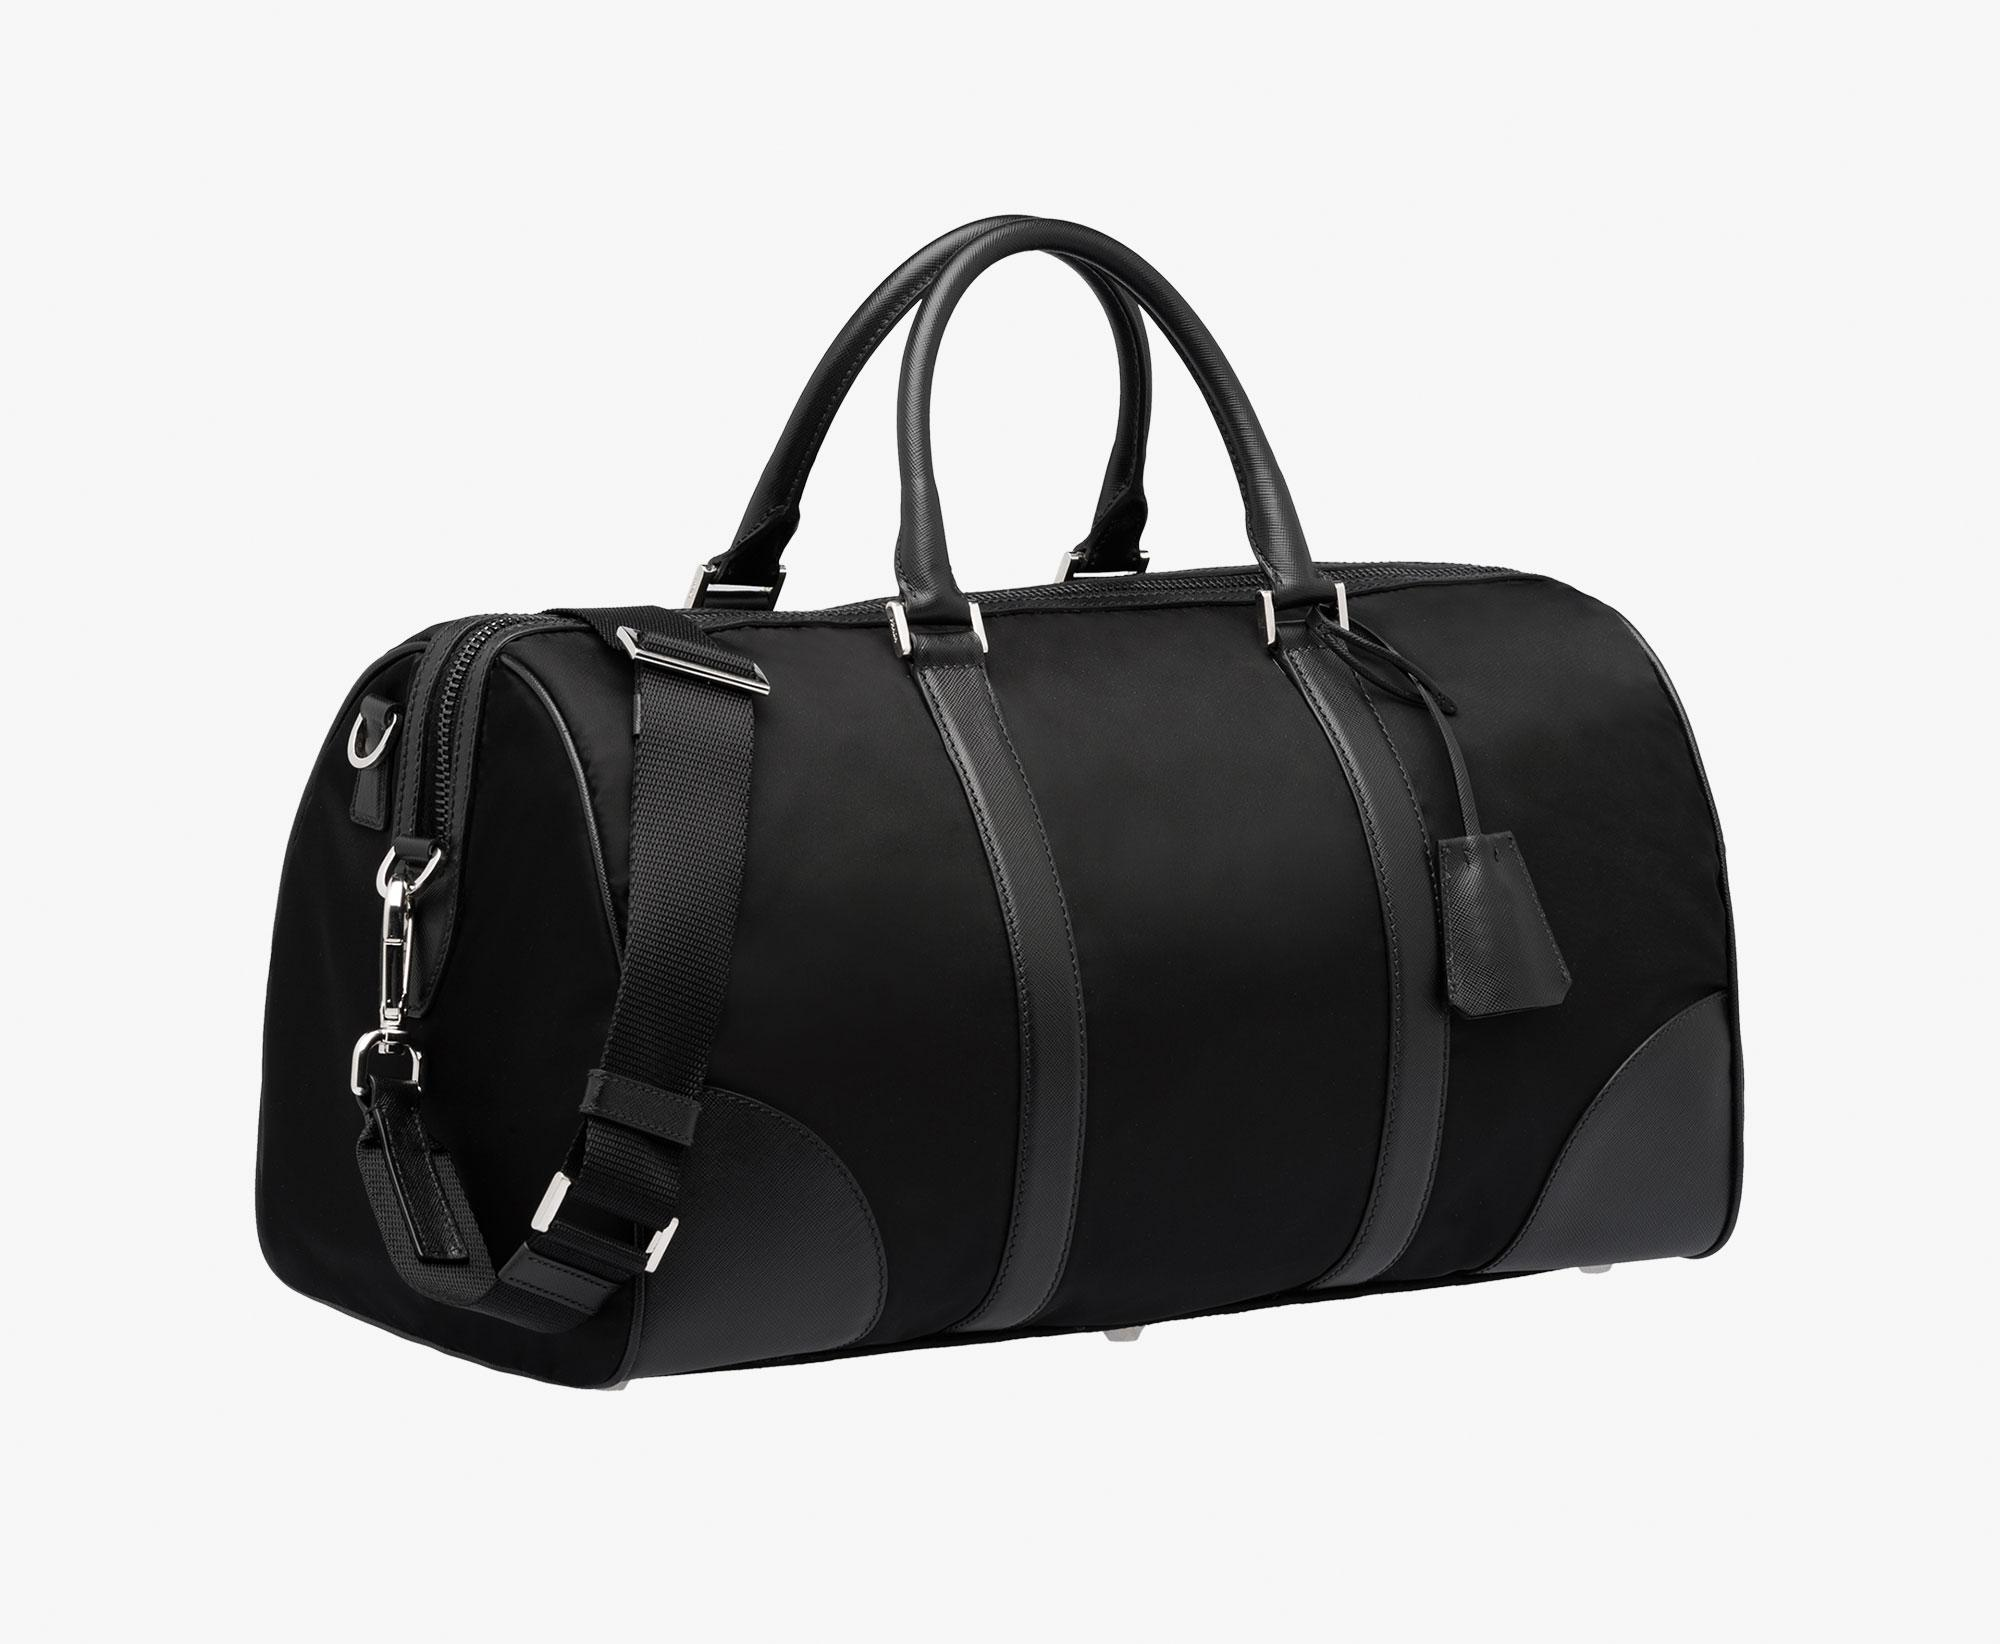 b41b9bbeb991 Gallery. Previously sold at: Modes, Prada · Men's Weekend Bags